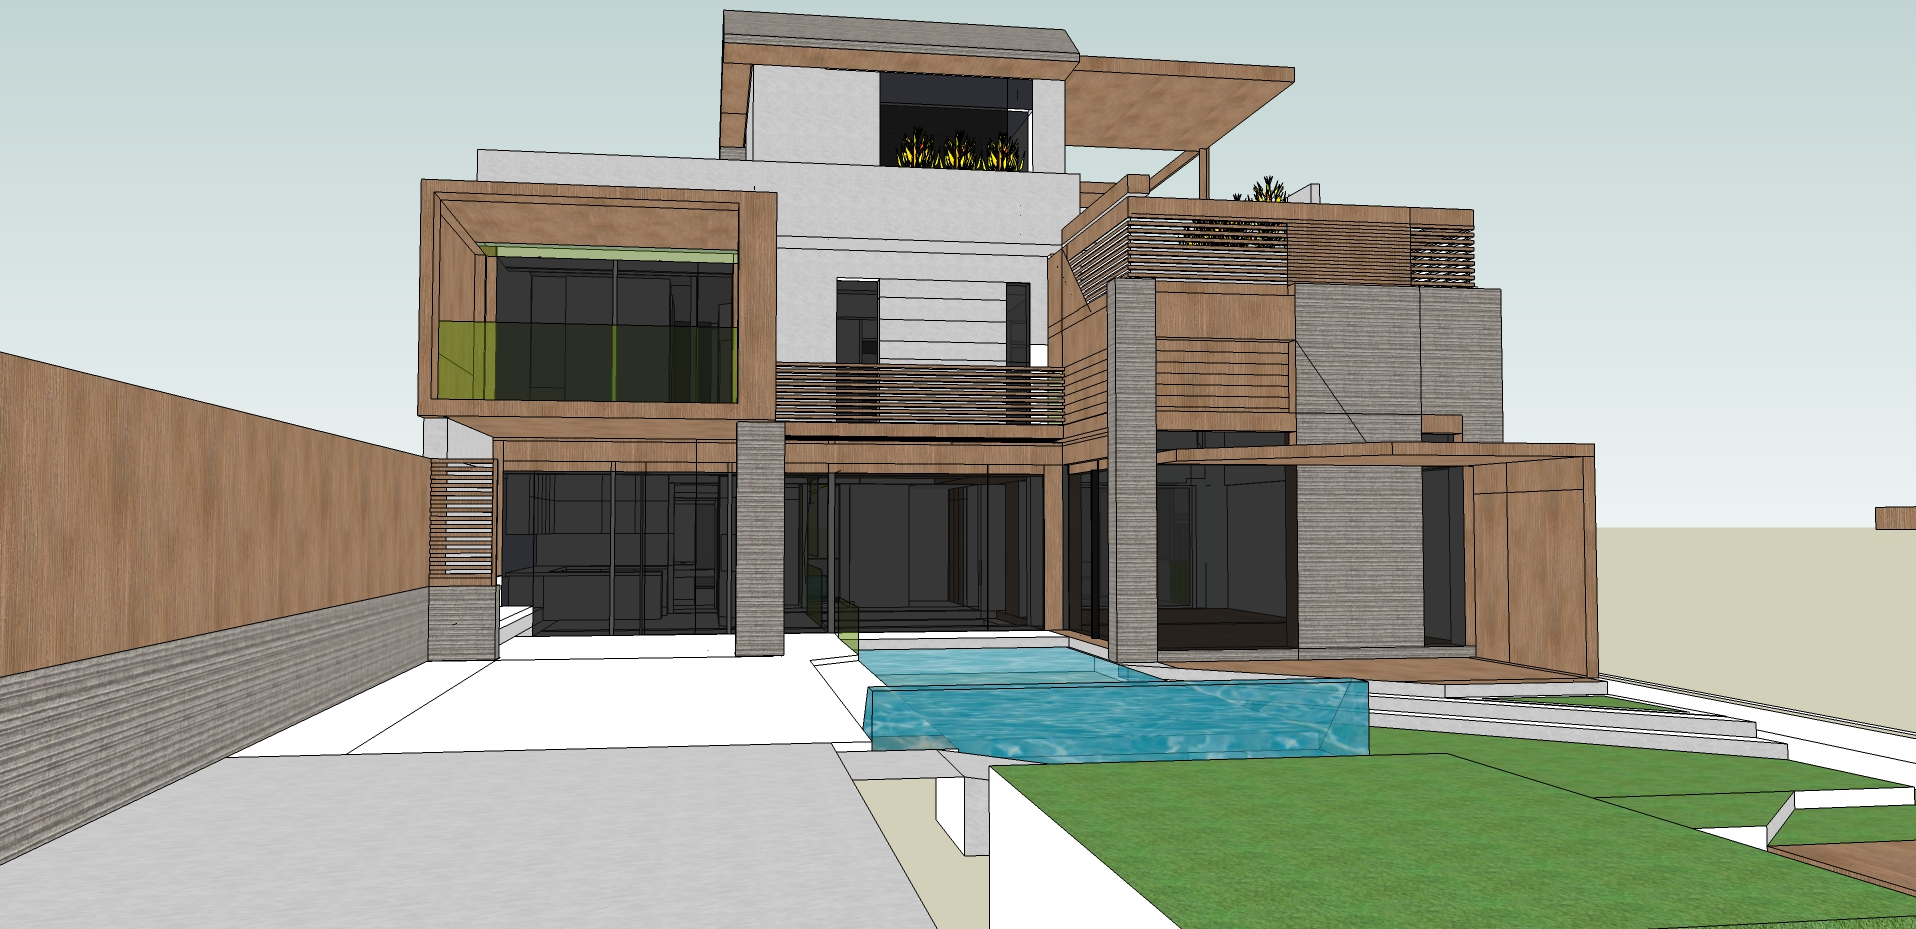 Structural Design of a 3 storey building in Larissa-2013. The project was undertaken by IAS architects.